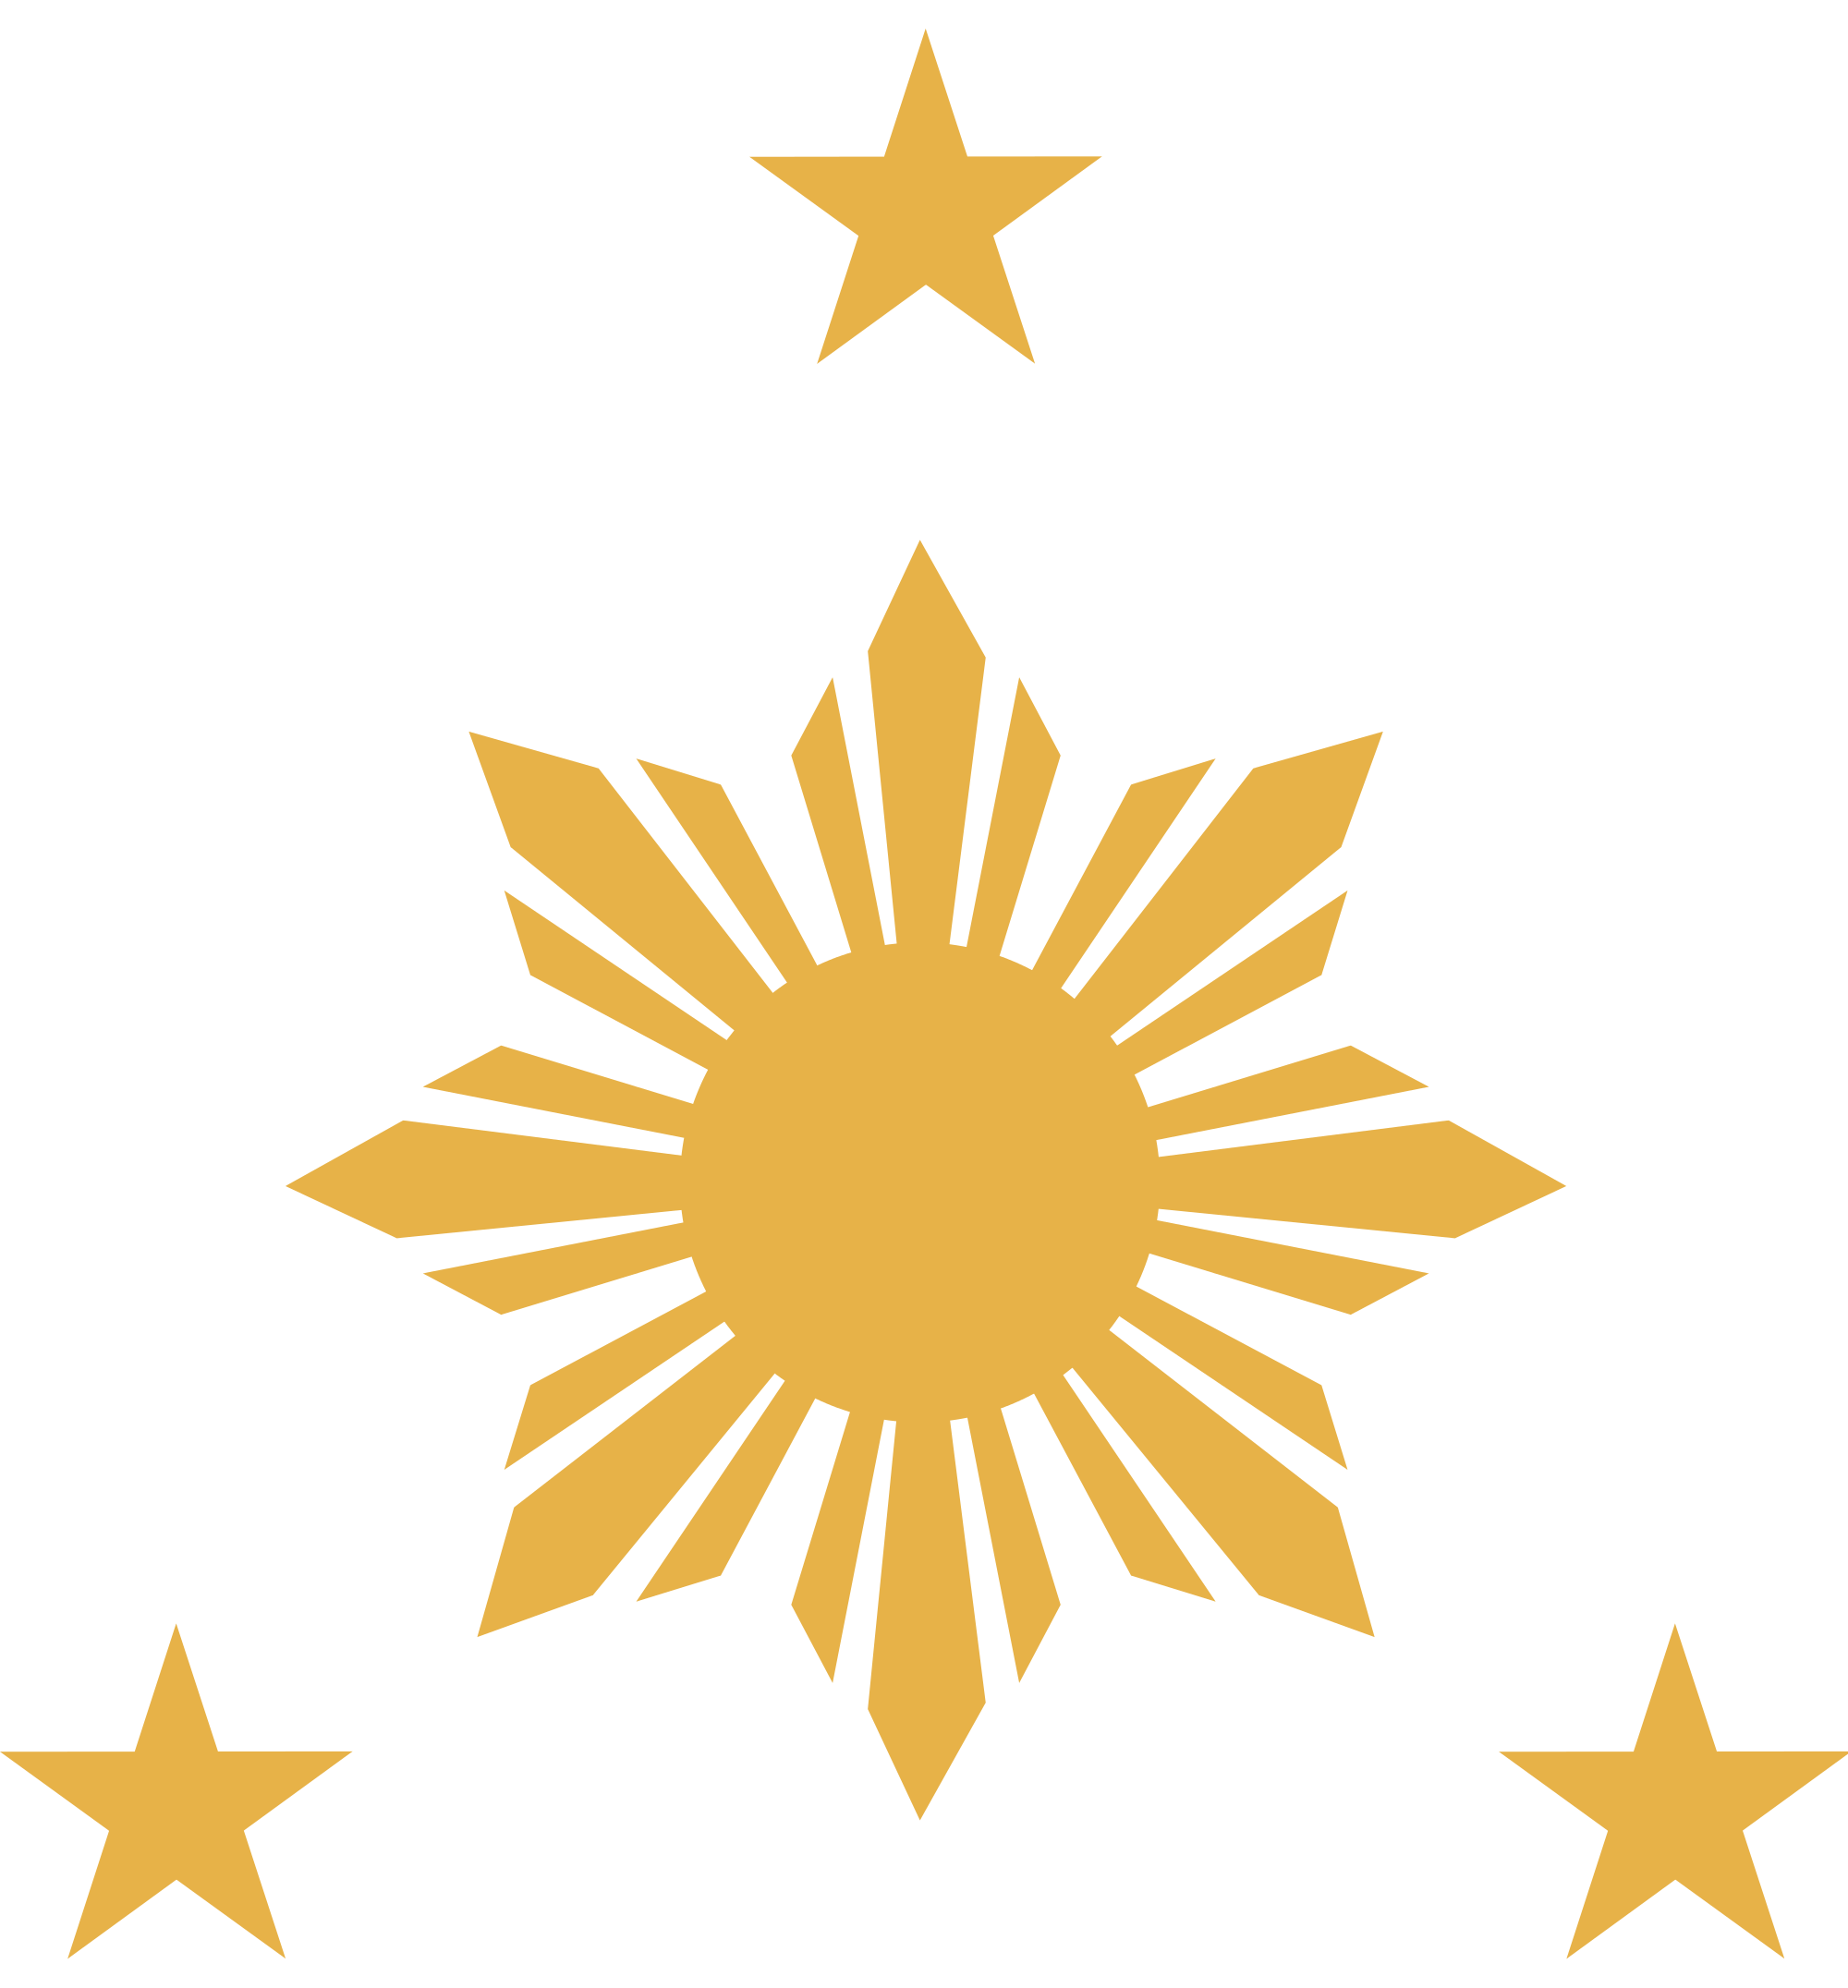 Philippines sun clipart image black and white File:Three Stars and Sun (Azkals).svg - Wikimedia Commons image black and white